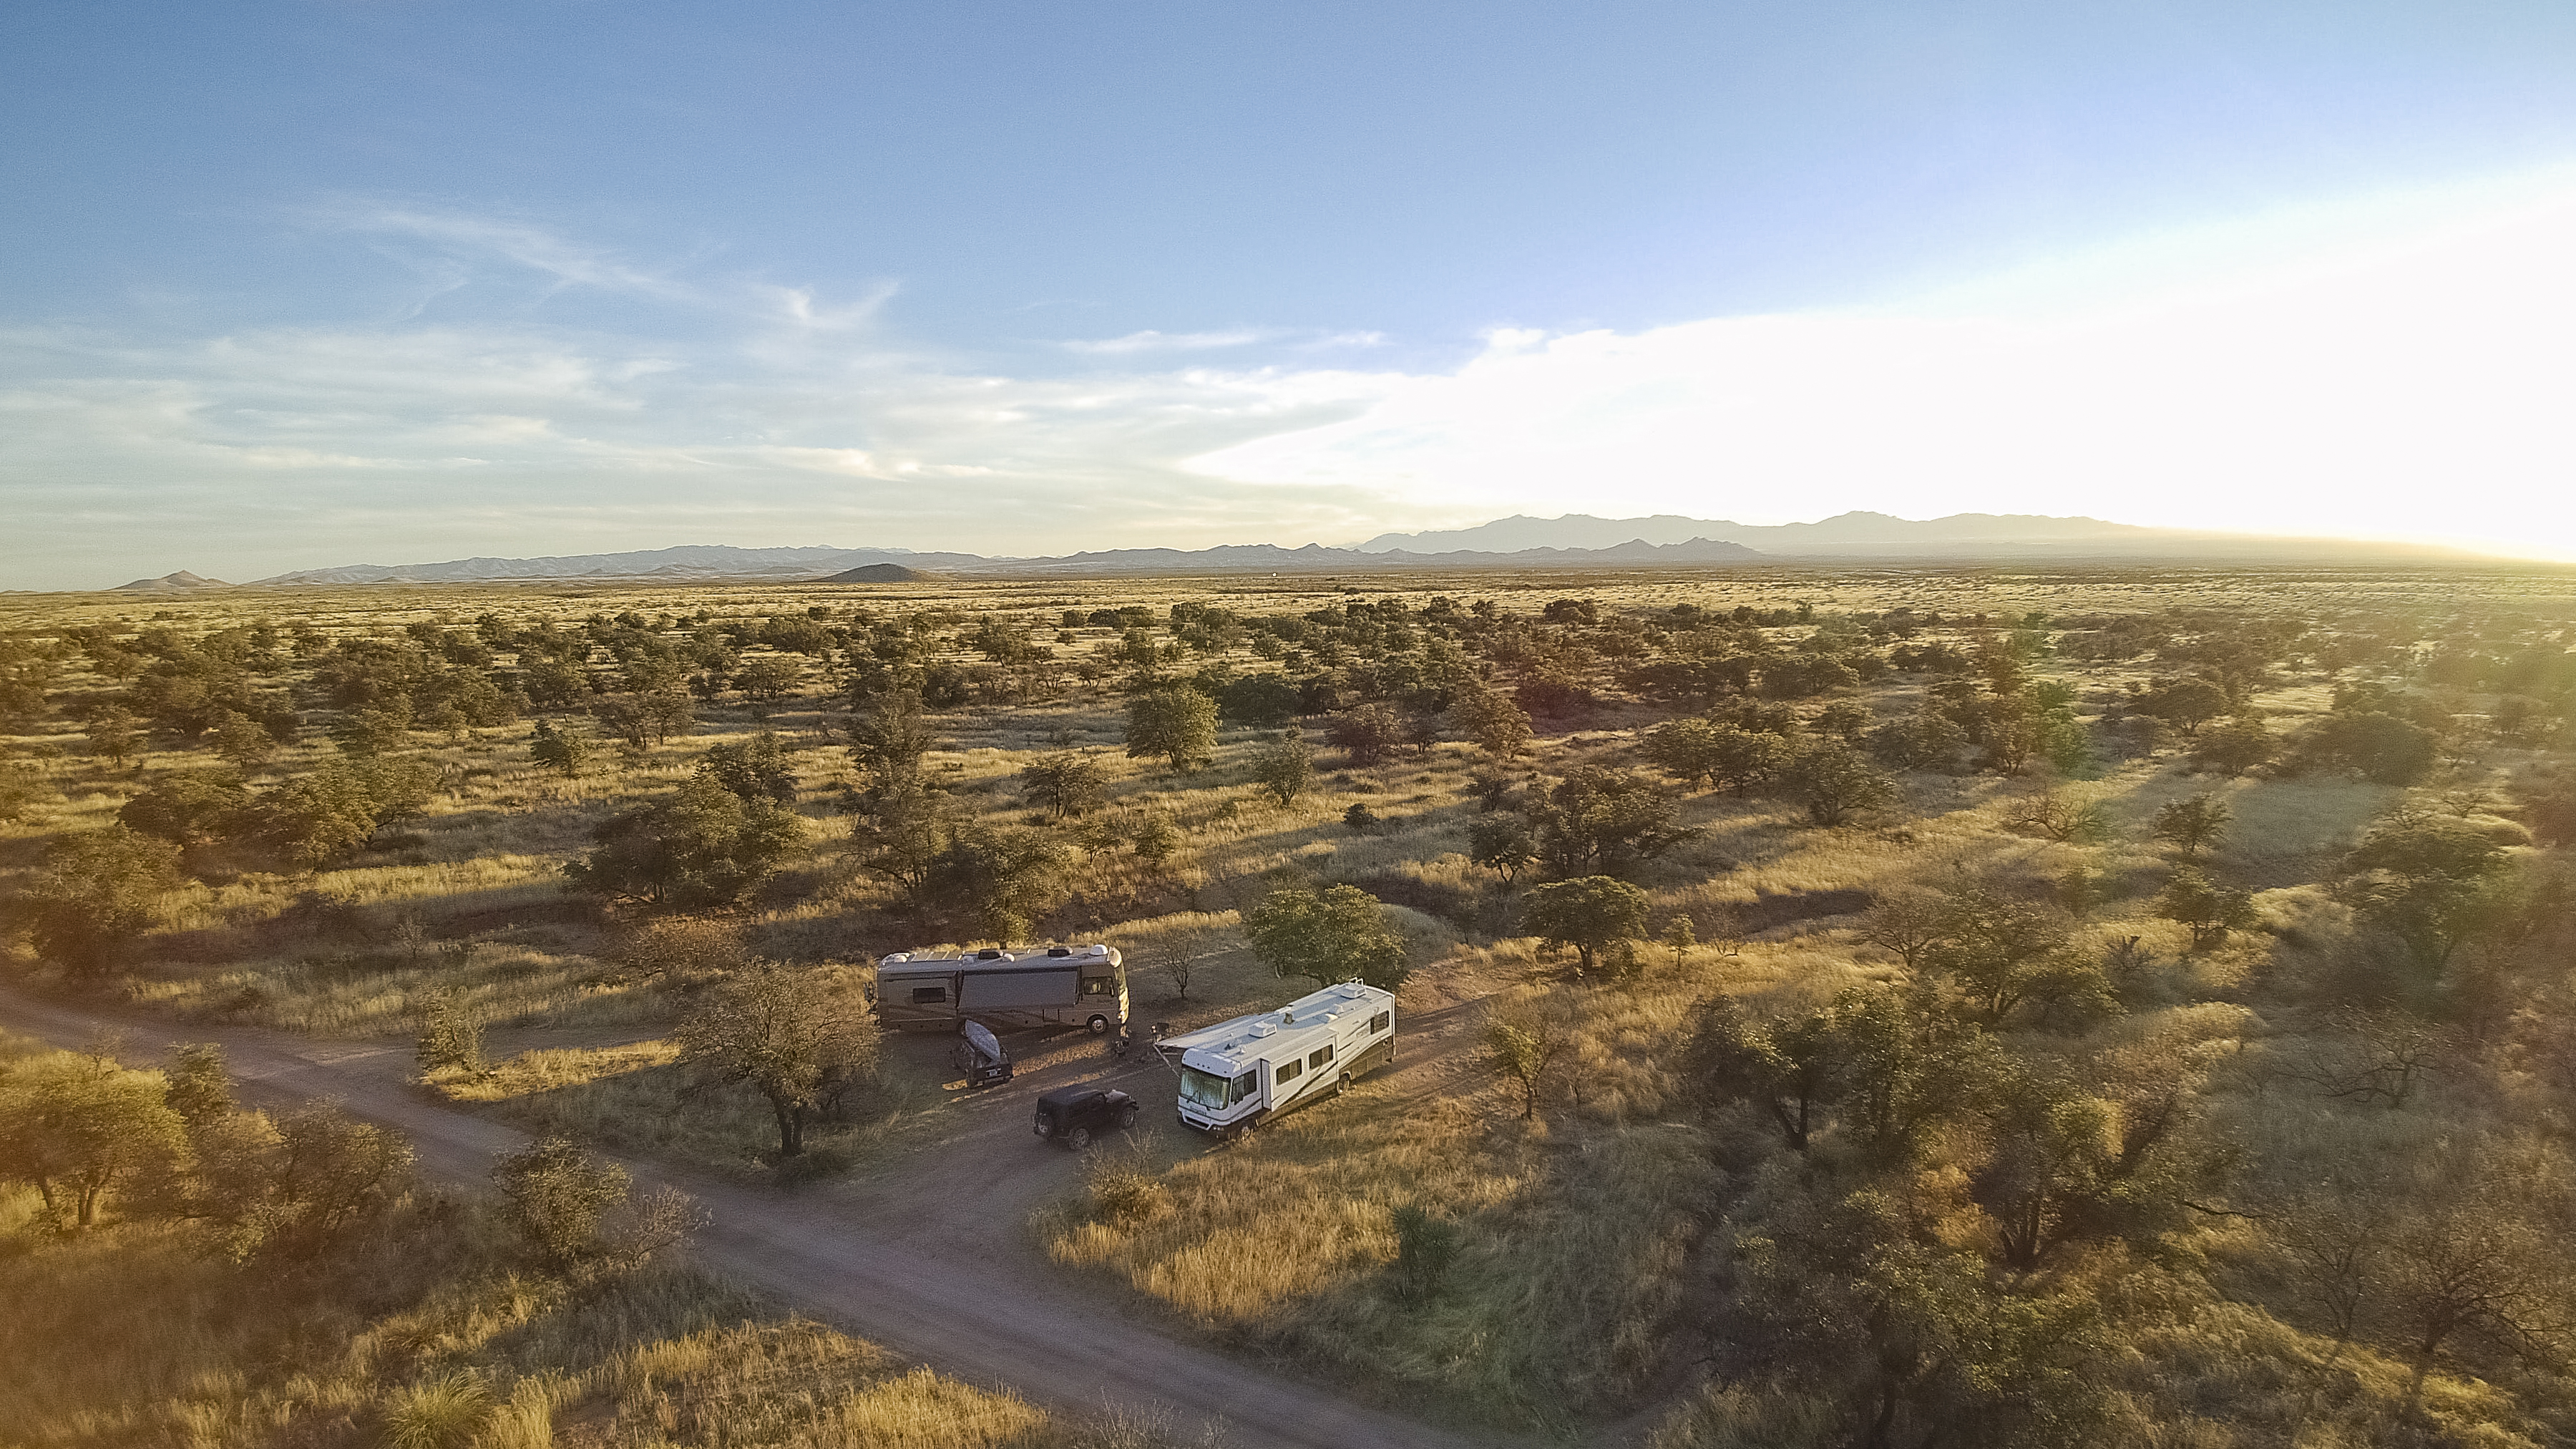 Practice water conversation to keep hydrated during your boondocking trip.